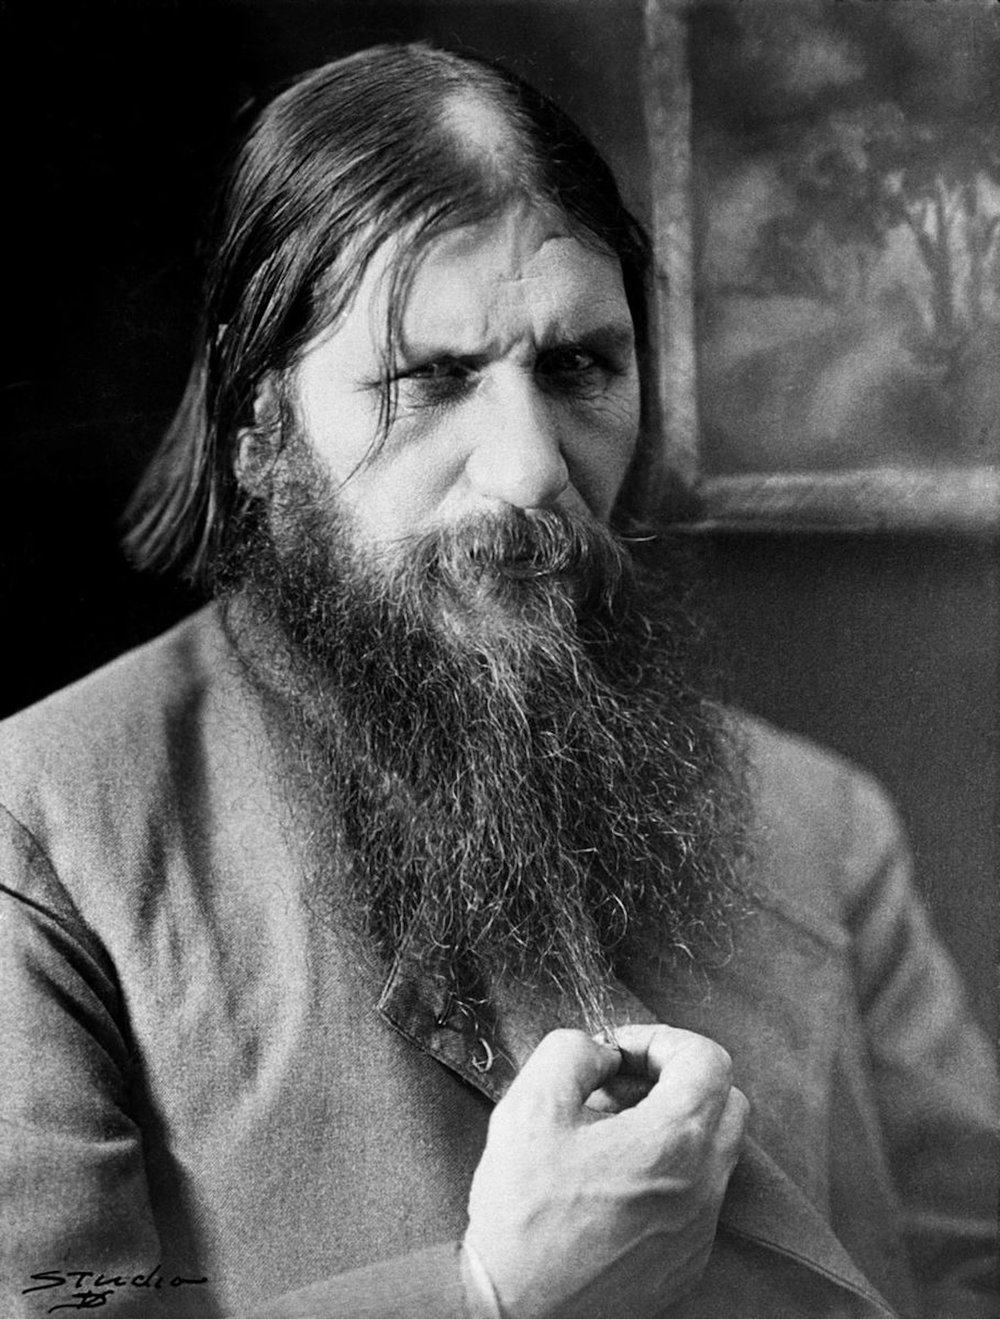 Rasputin was born in a small Siberian river village and worked his way into the Romanov's hearts. He earned a place of honor in court, advising the royal family. (Unknown)